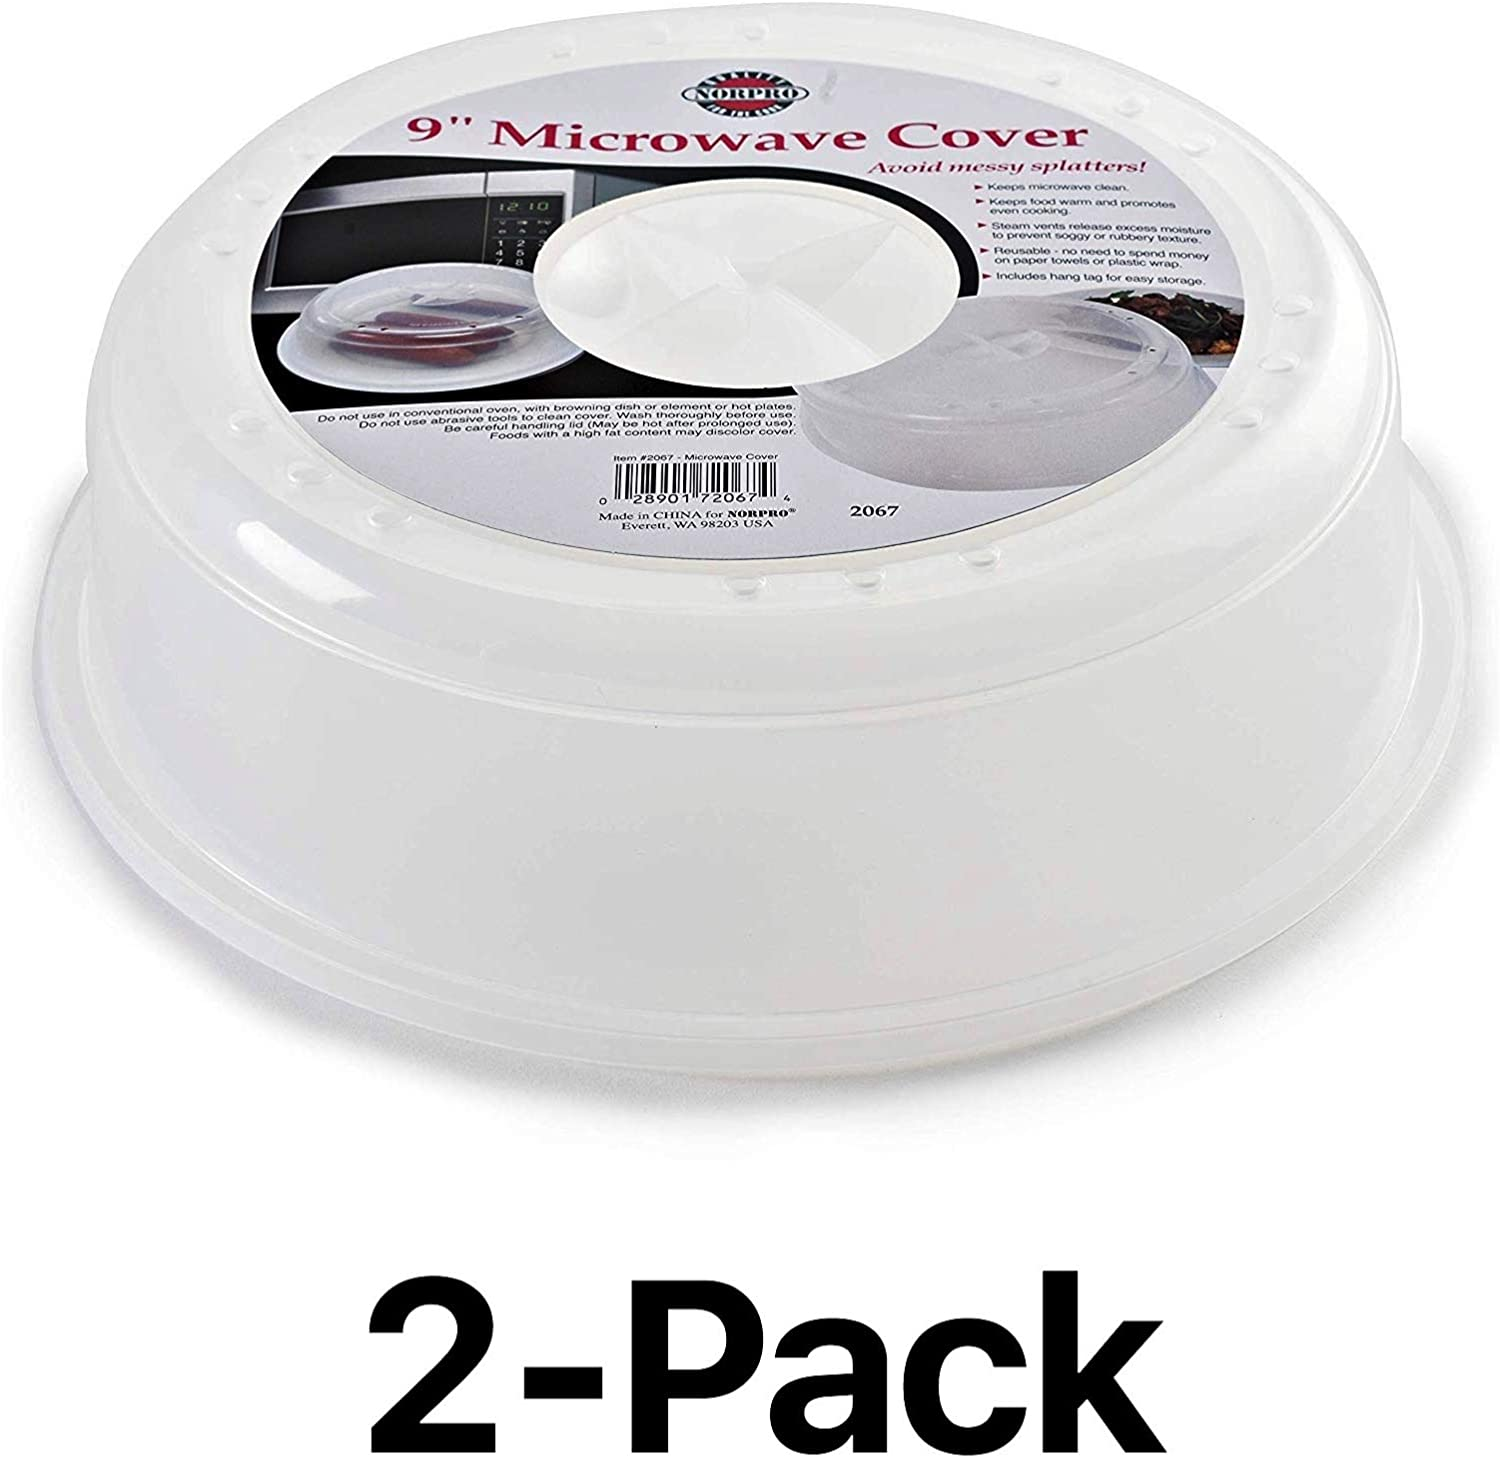 Norpro 2067 Microwave Cover (2) pack